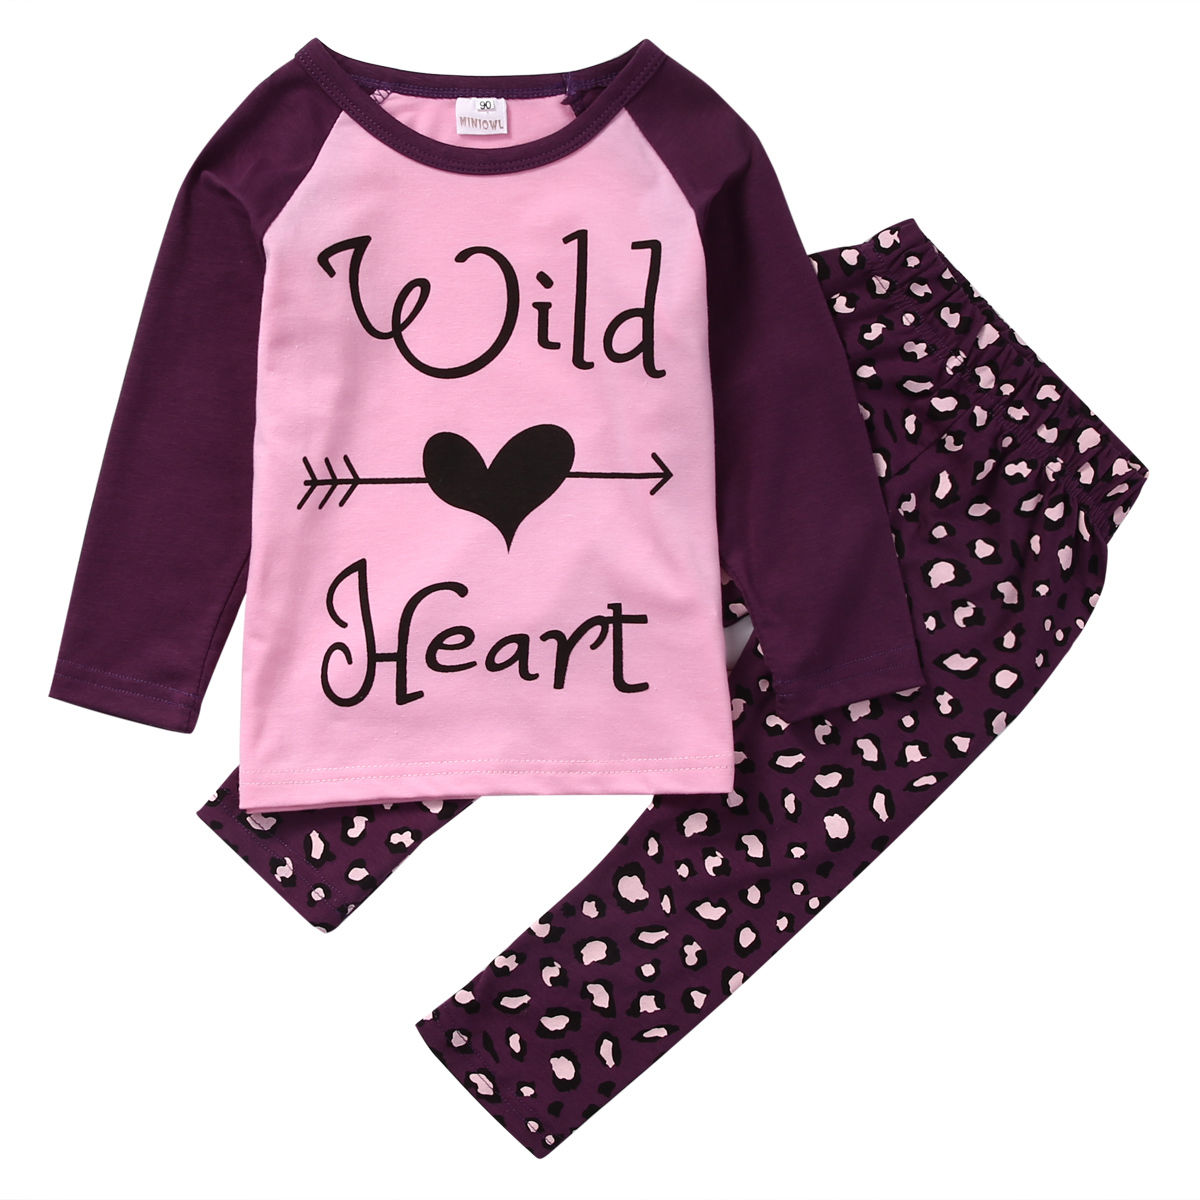 Top Long Sleeve Pants Clothes 2pcs Outfit Set Baby Girl Kid Clothes Set Autumn Winter Toddler Shirt Girls 1-6Y kid girl lace collar long sleeve pullover cotton base shirt top toddler 2 7y m78 new